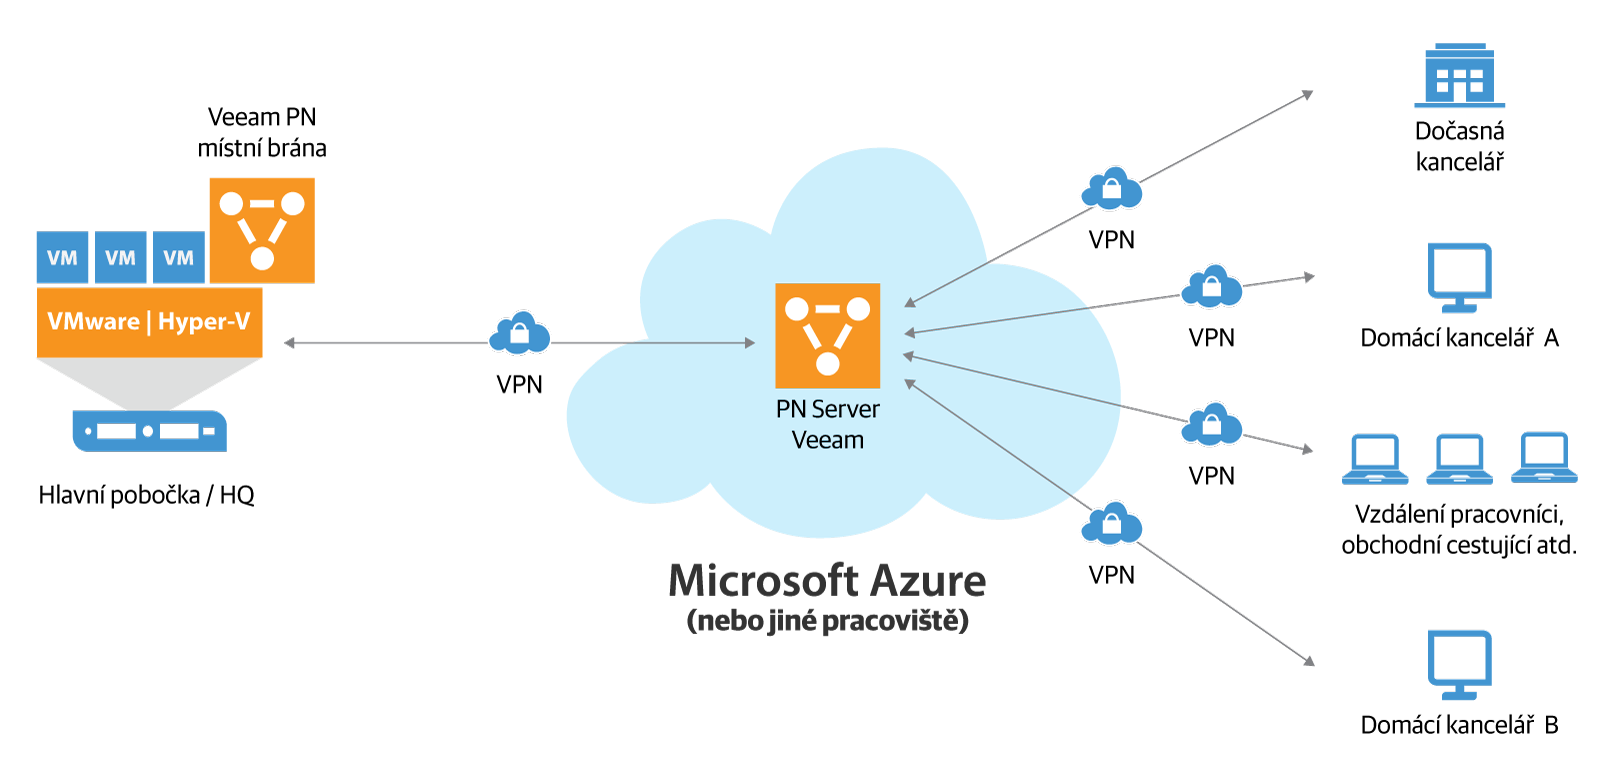 veeam_pn_for_microsoft_azure_cz.png